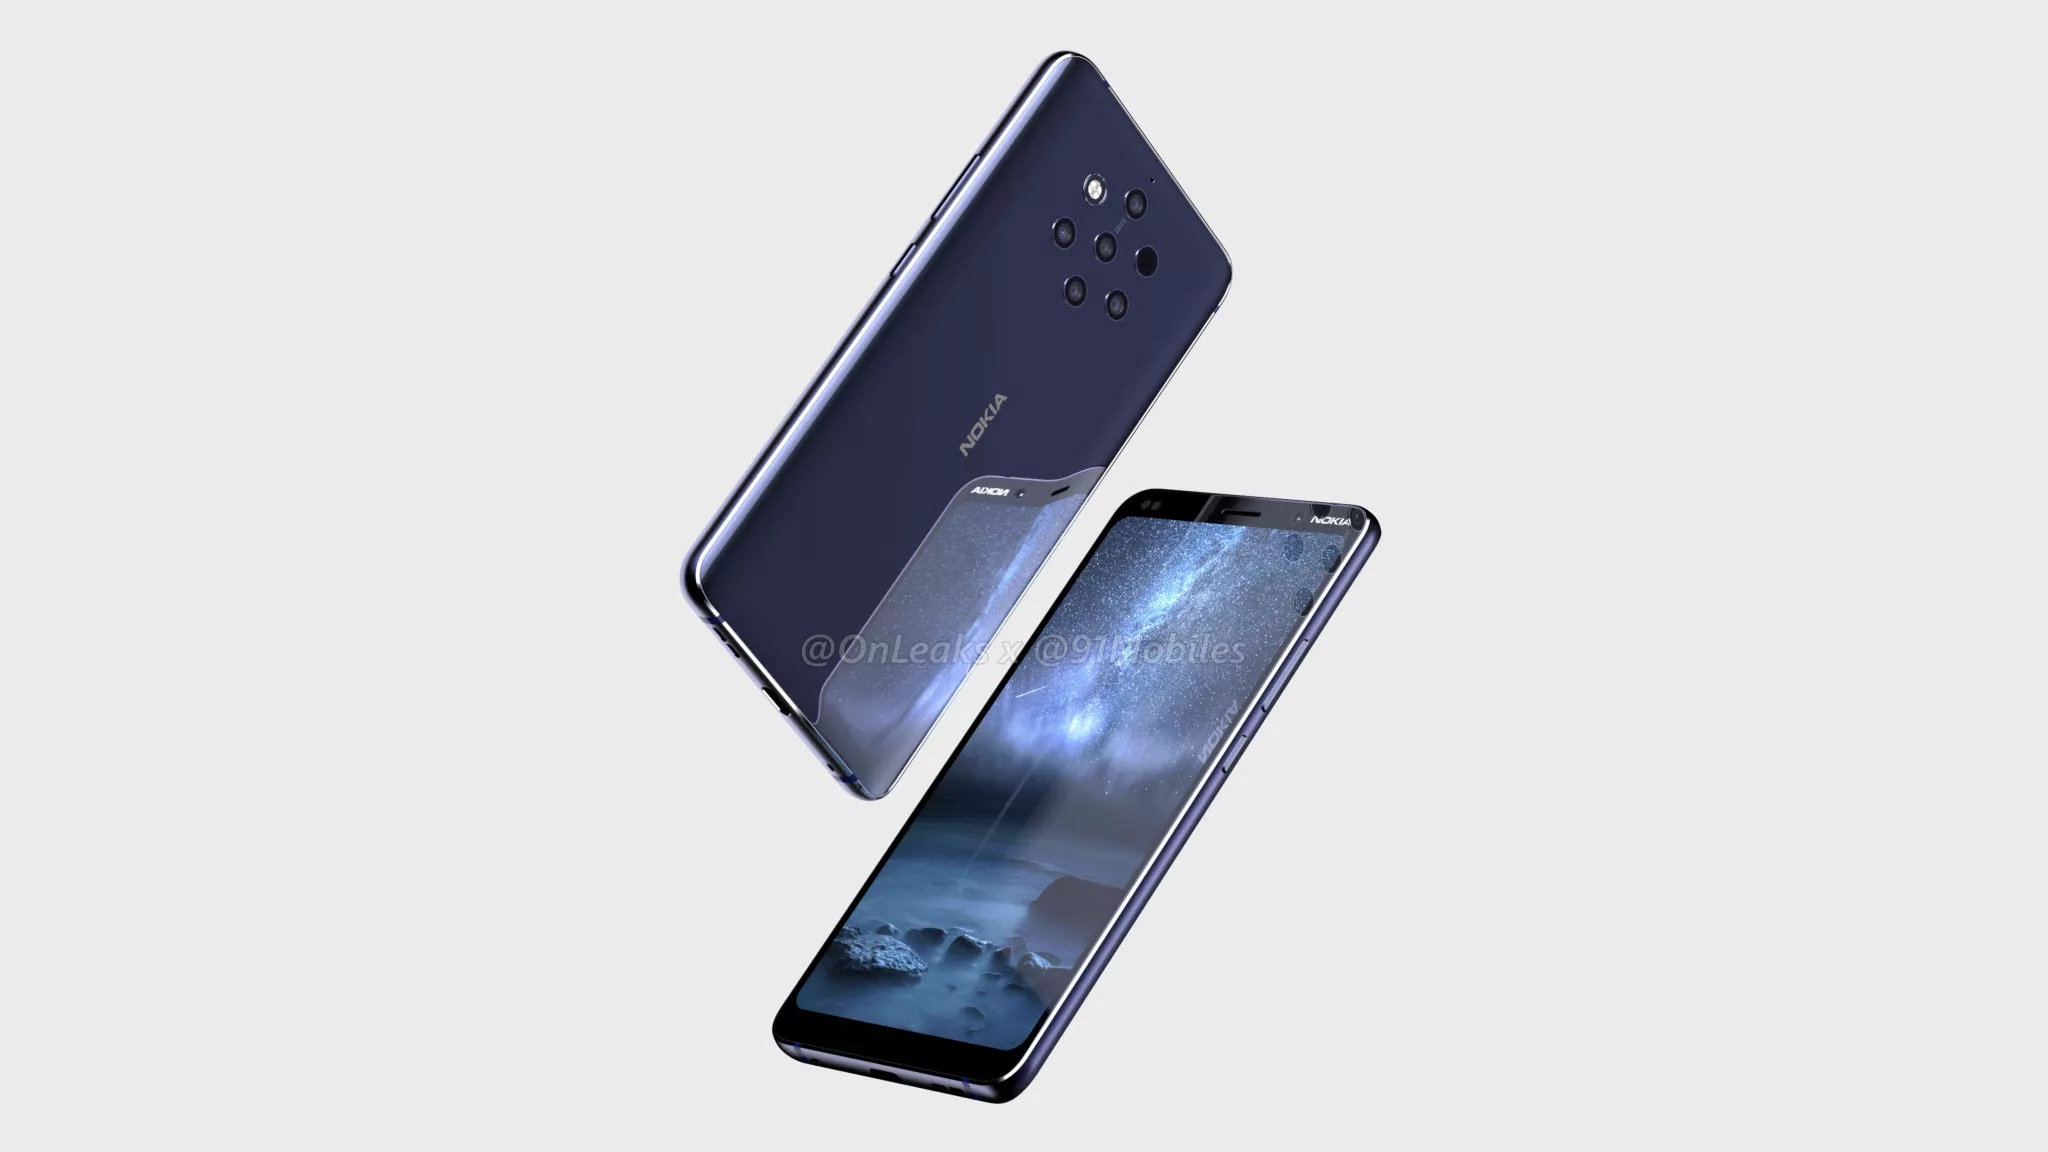 Leaked New Nokia 9 Pureview Smartphone With Five Zeiss